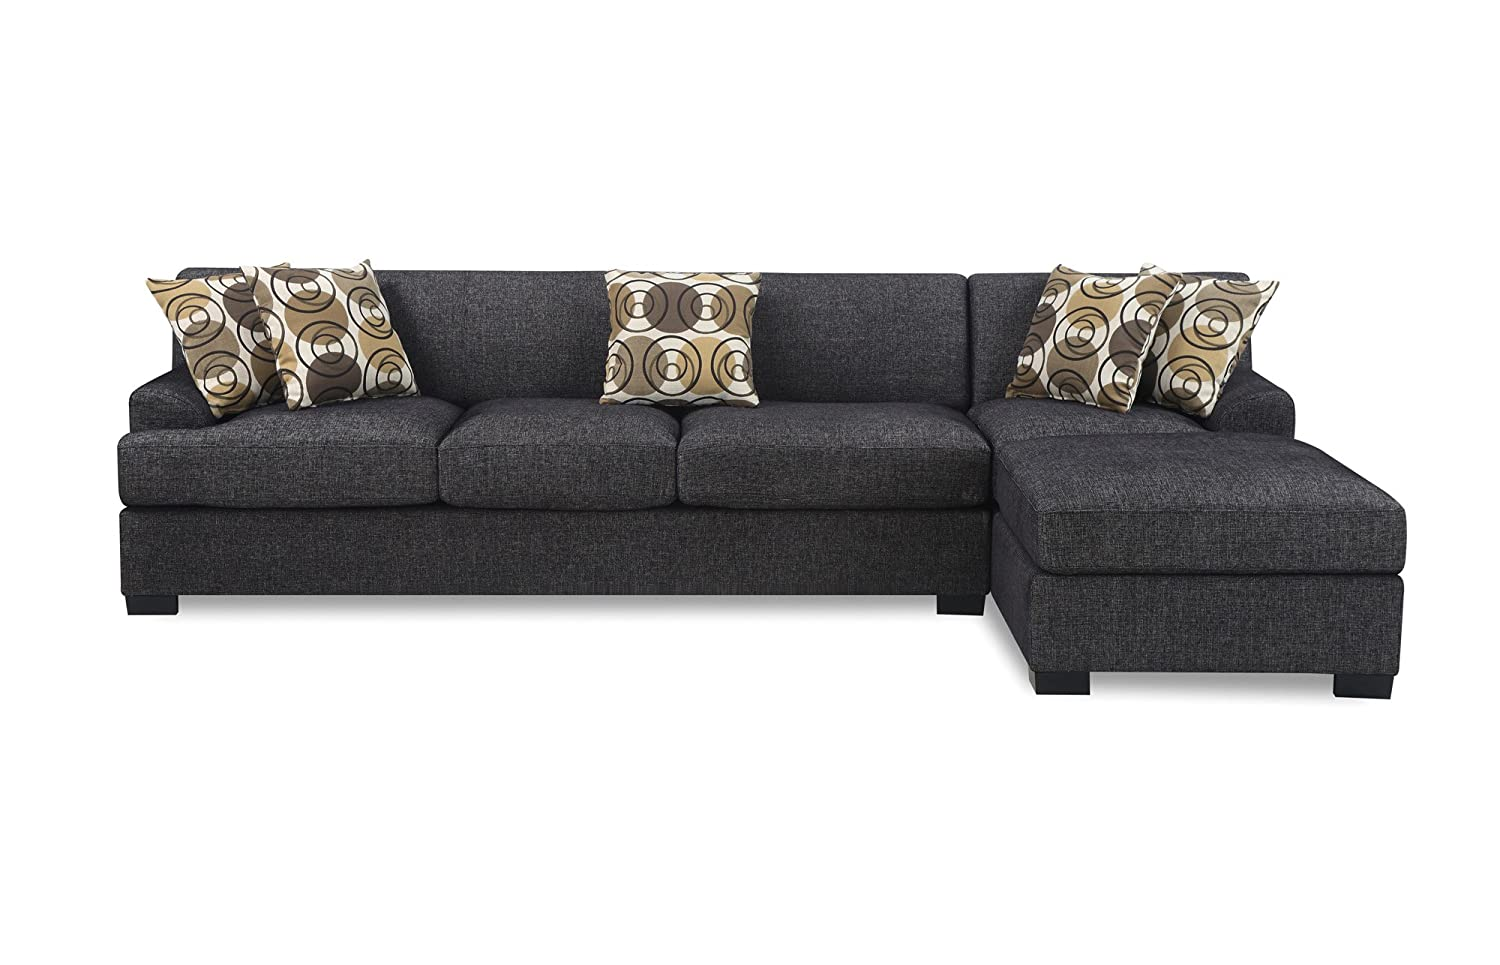 Amazon.com Bobkona Benford 2-Piece Chaise Loveseat Sectional Sofa Collection with Faux Linen Ash Black Kitchen u0026 Dining  sc 1 st  Amazon.com : loveseat chaise sofa - Sectionals, Sofas & Couches